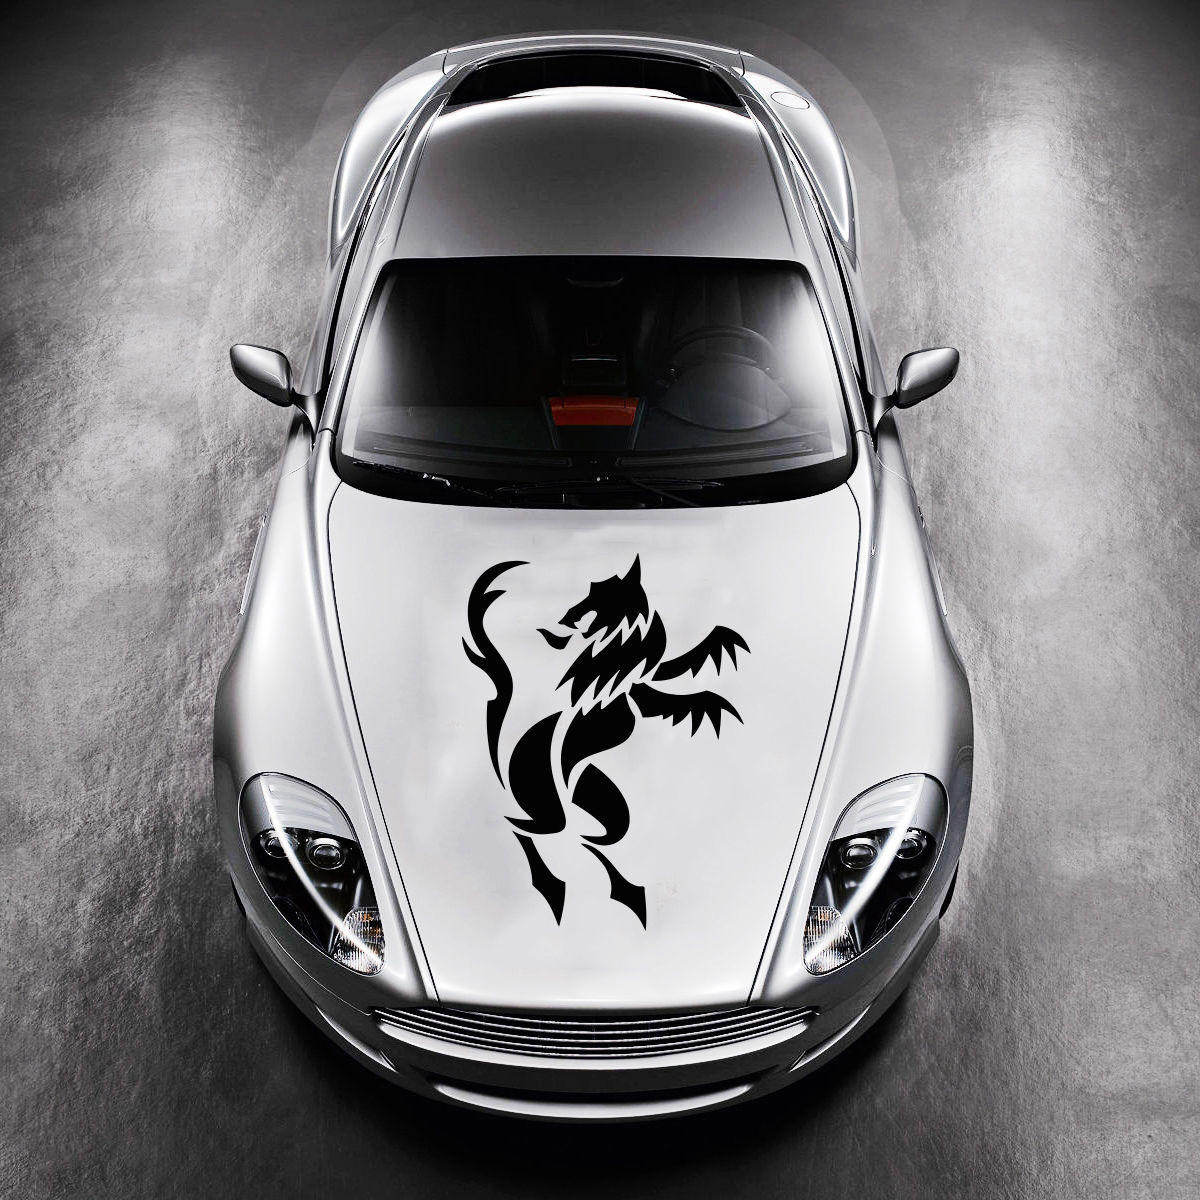 Car sticker design shop - Beautiful Animal Wolf Design Hood Car Vinyl Sticker Decals Art Murals Sv1553